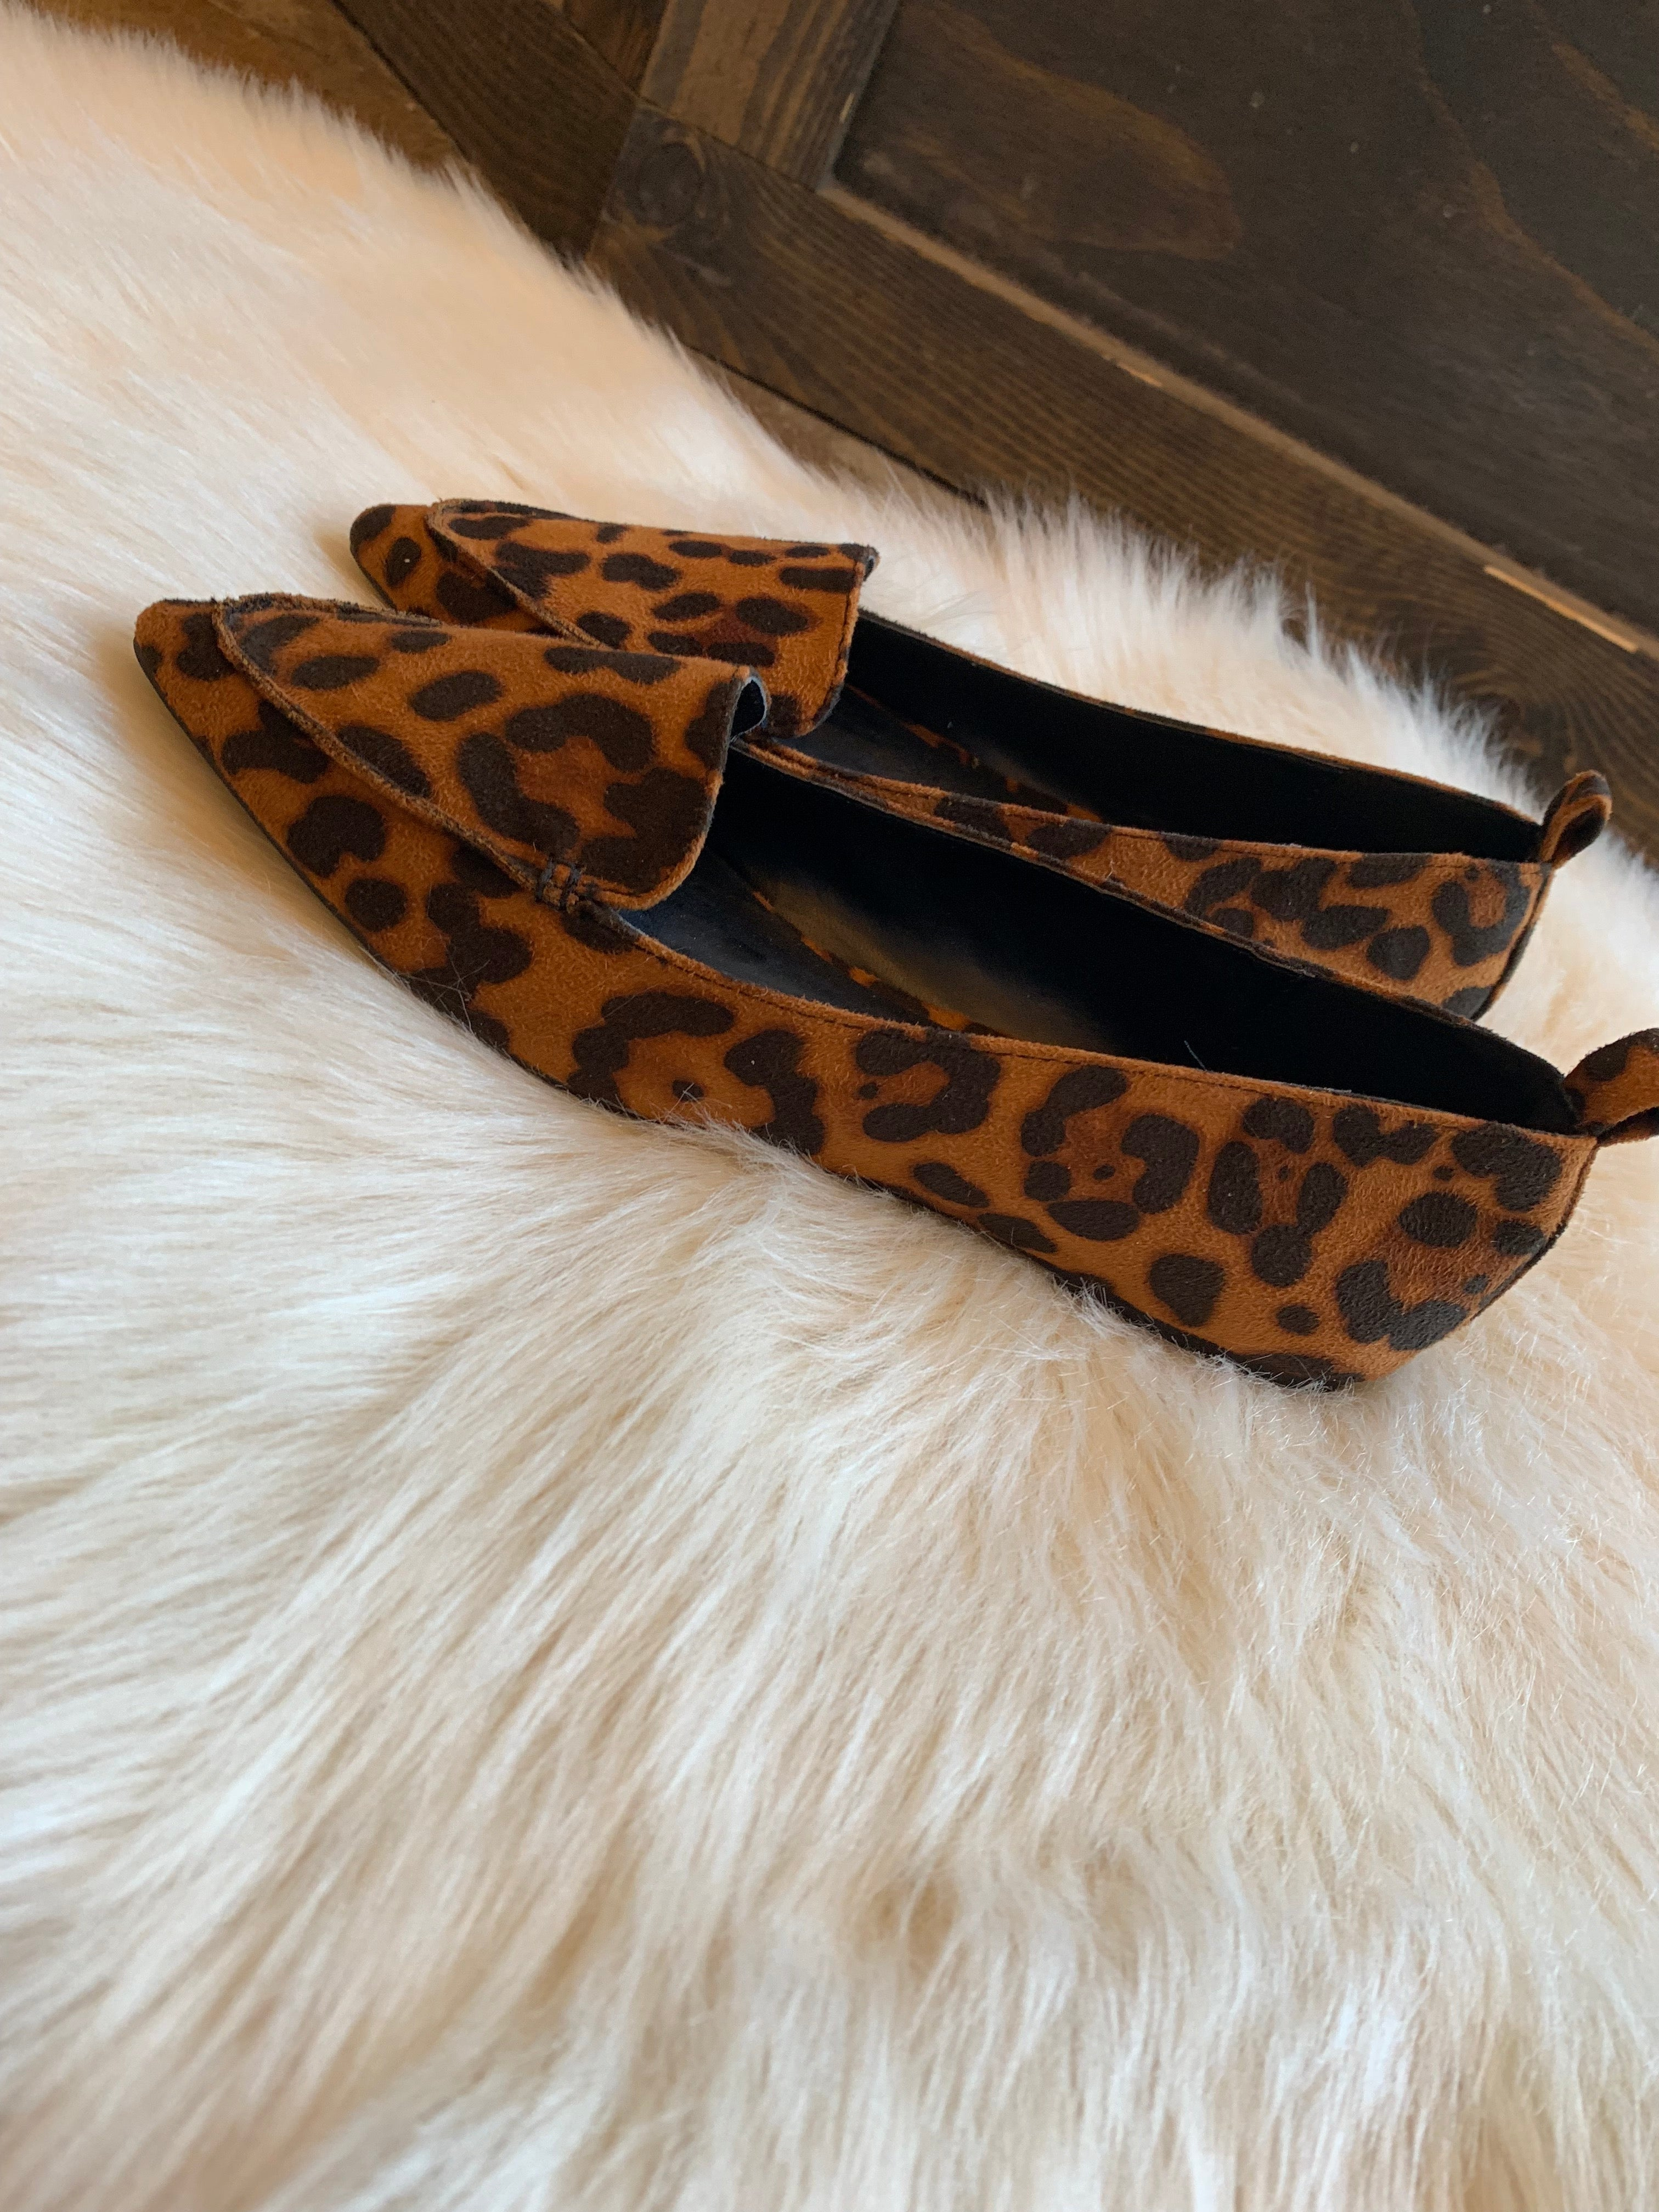 Styled Up Leopard Pointed Toe Flats